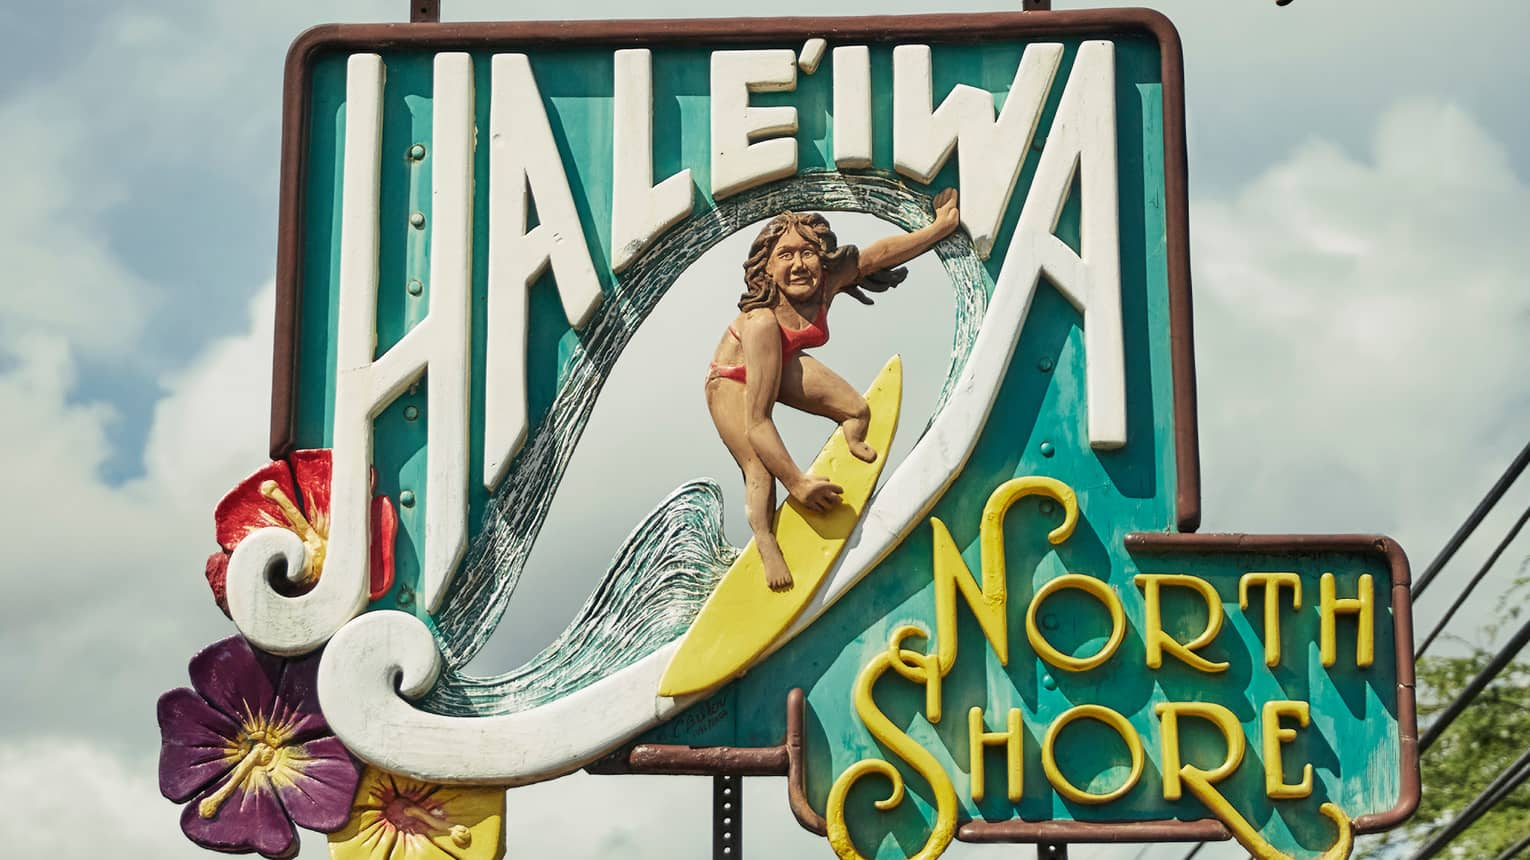 Colourful wood sign reading Haleiwa North Shore with carving of woman on surfboard